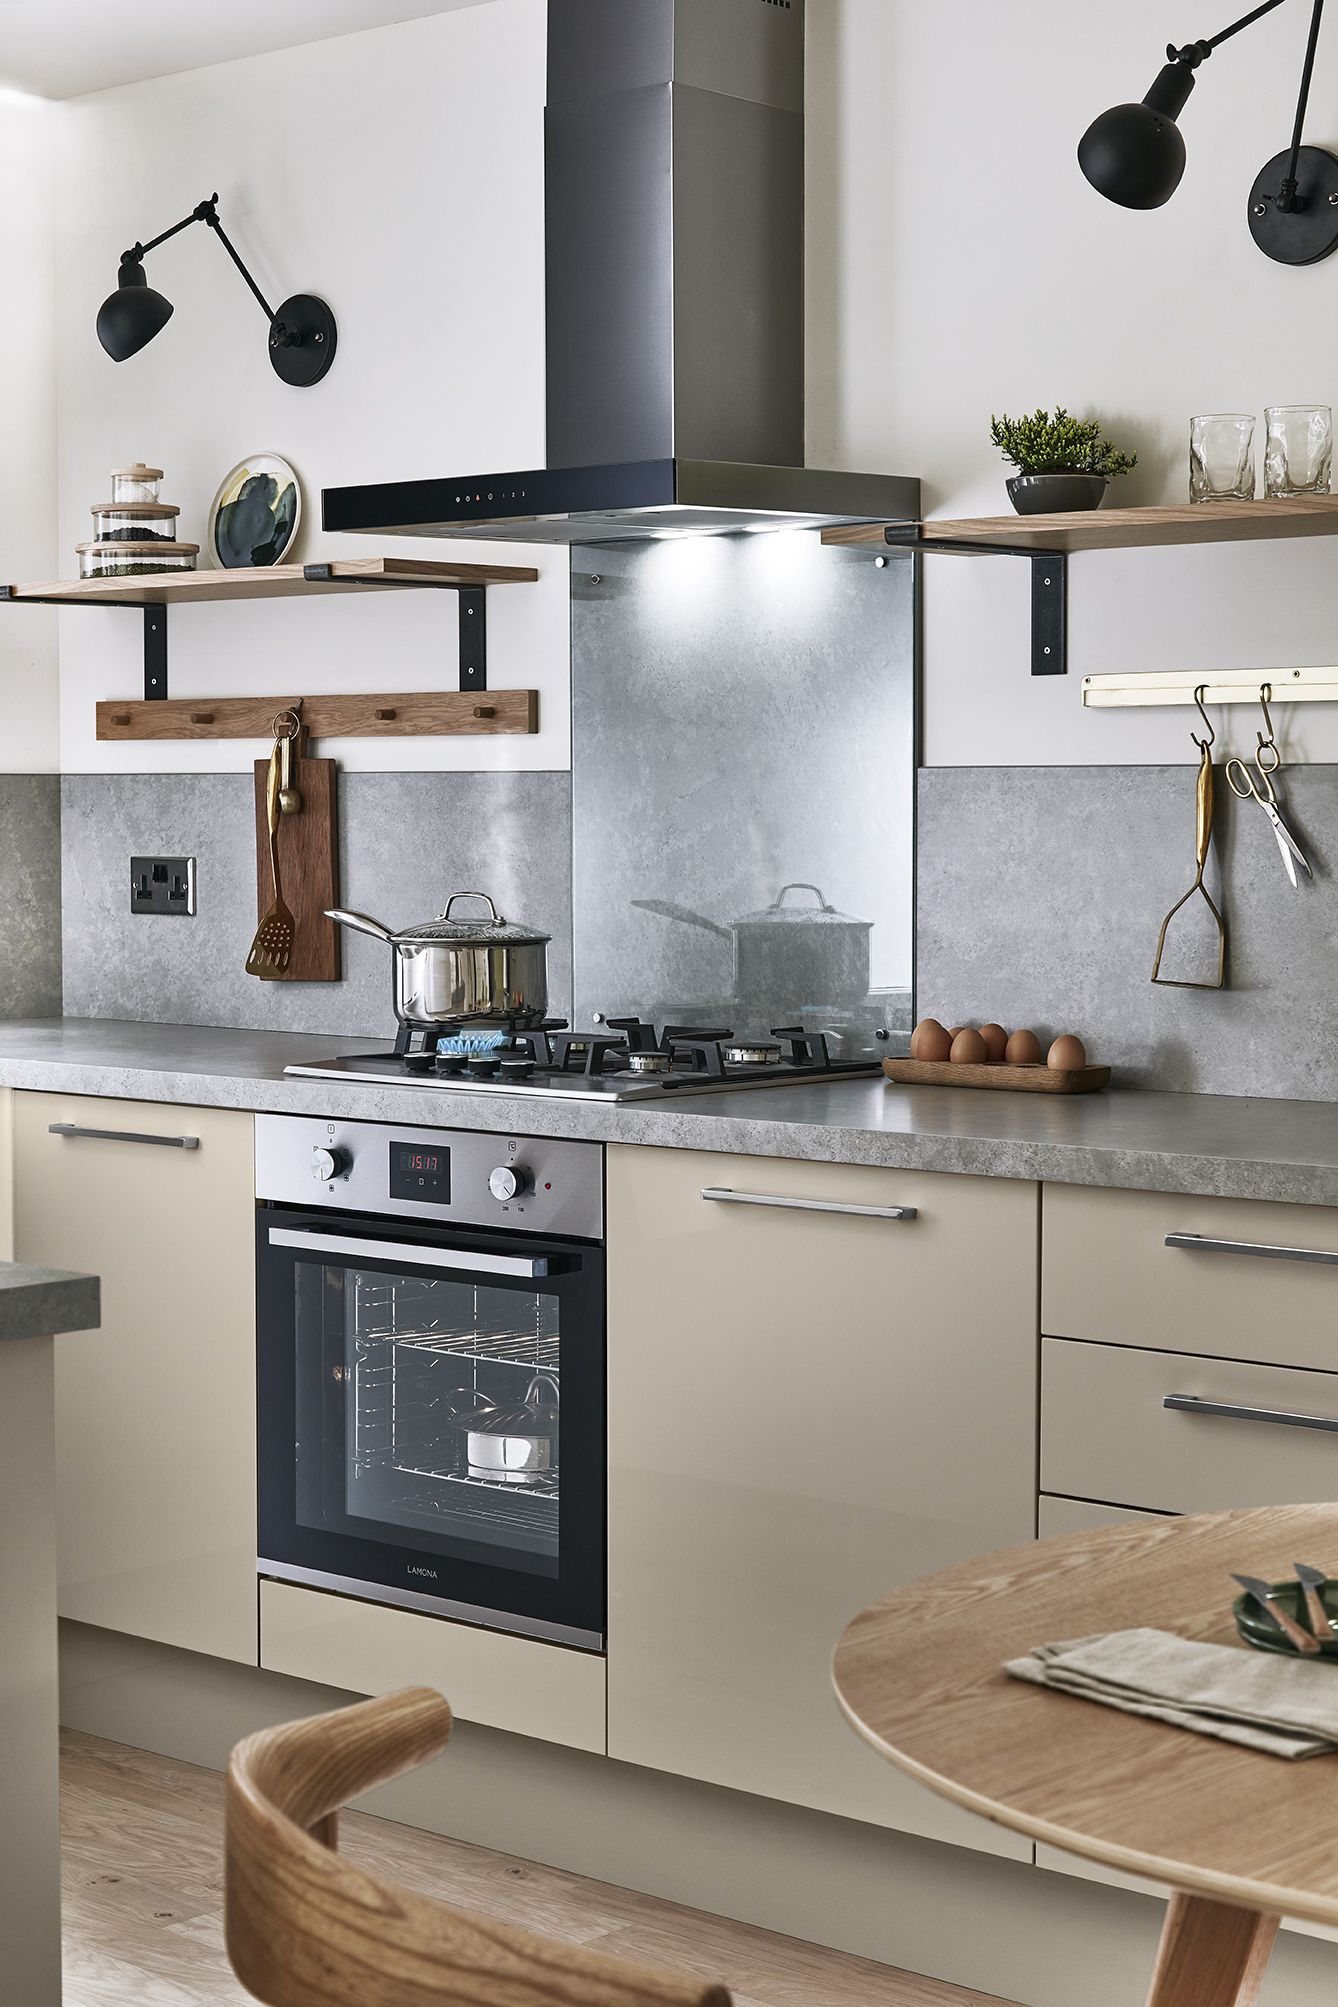 Home kitchen collection kitchen families glendevon family glendevon - The Glendevon Gloss Cashmere Kitchen From Howdens The Soft Neutral Colours Give An Inviting Warm